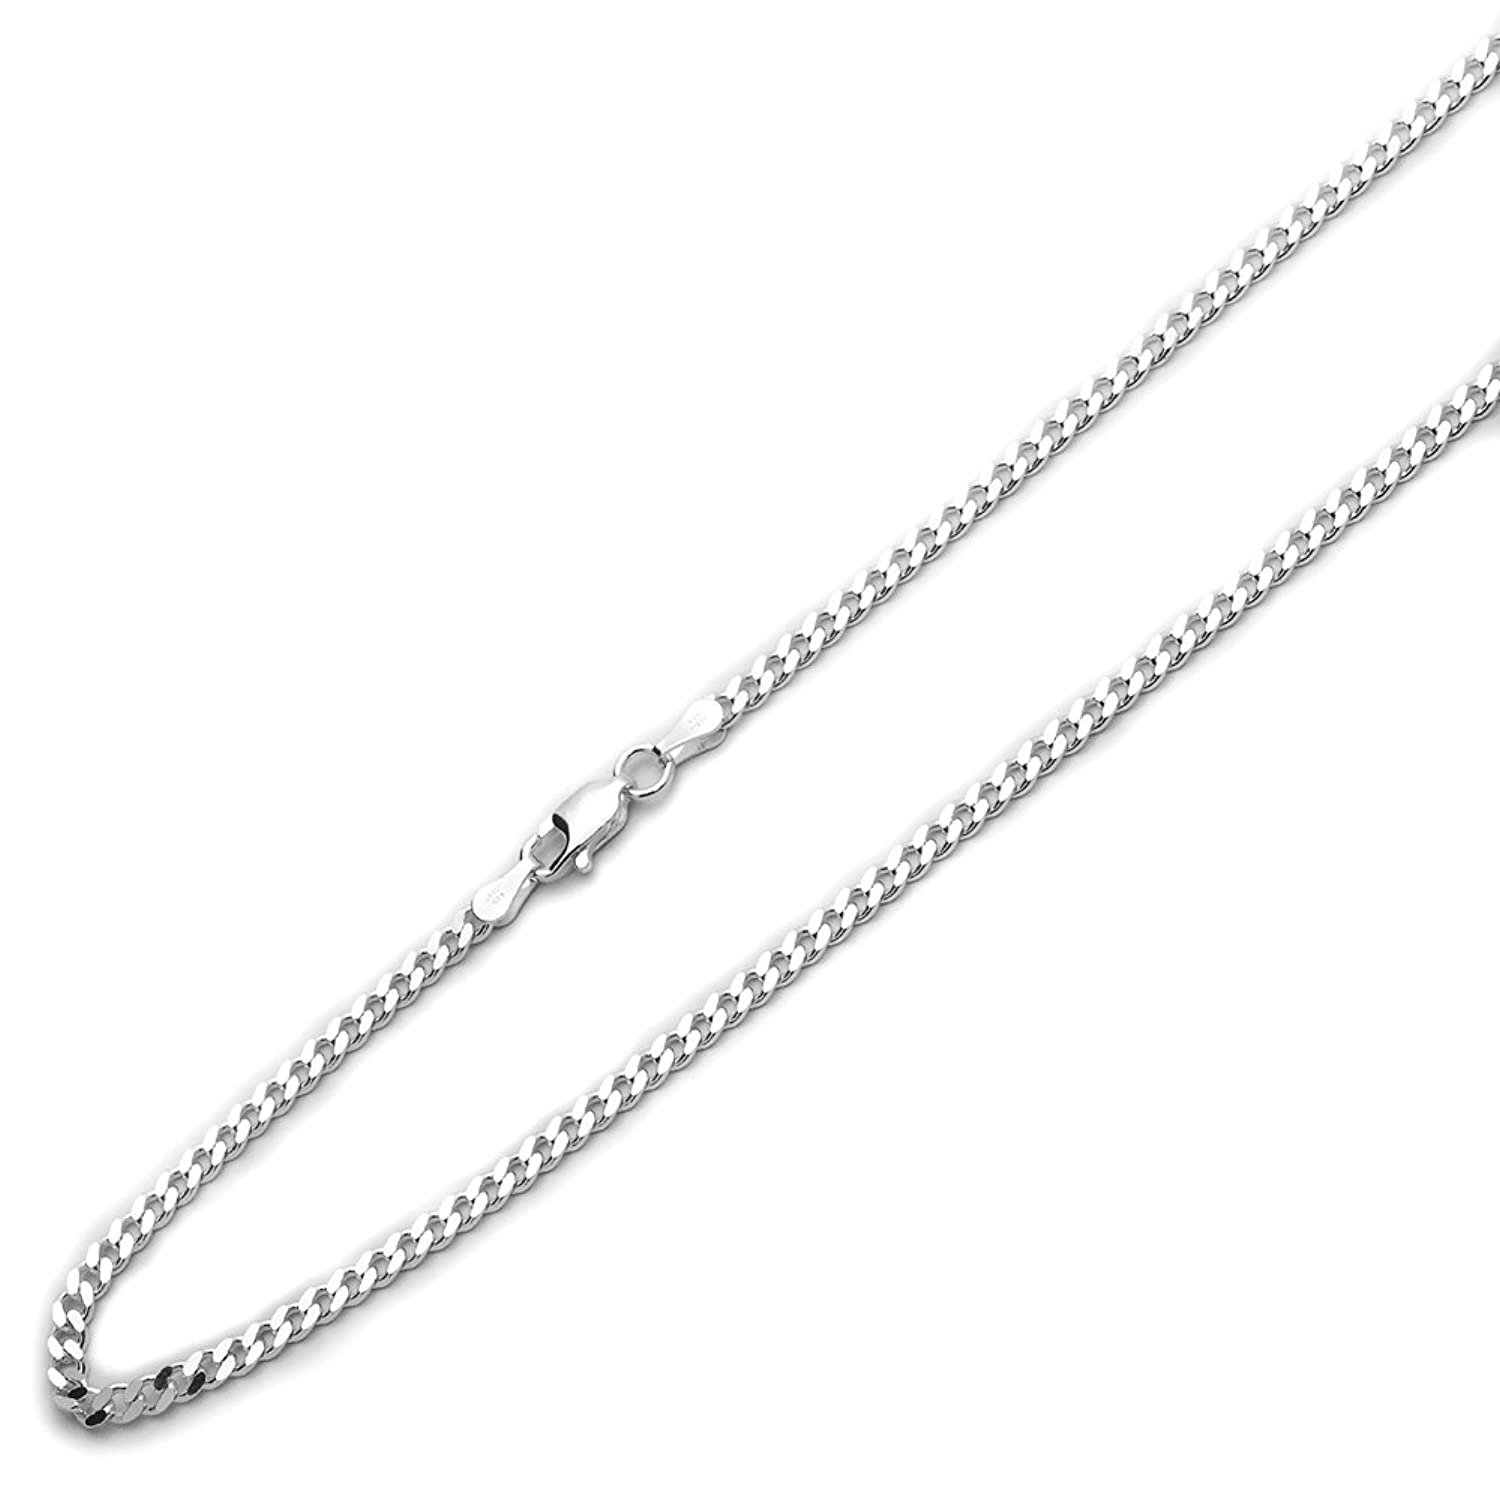 product mm free jewelry shipping sterling italian chain inch watches figaro silver jewellery beveled overstock today